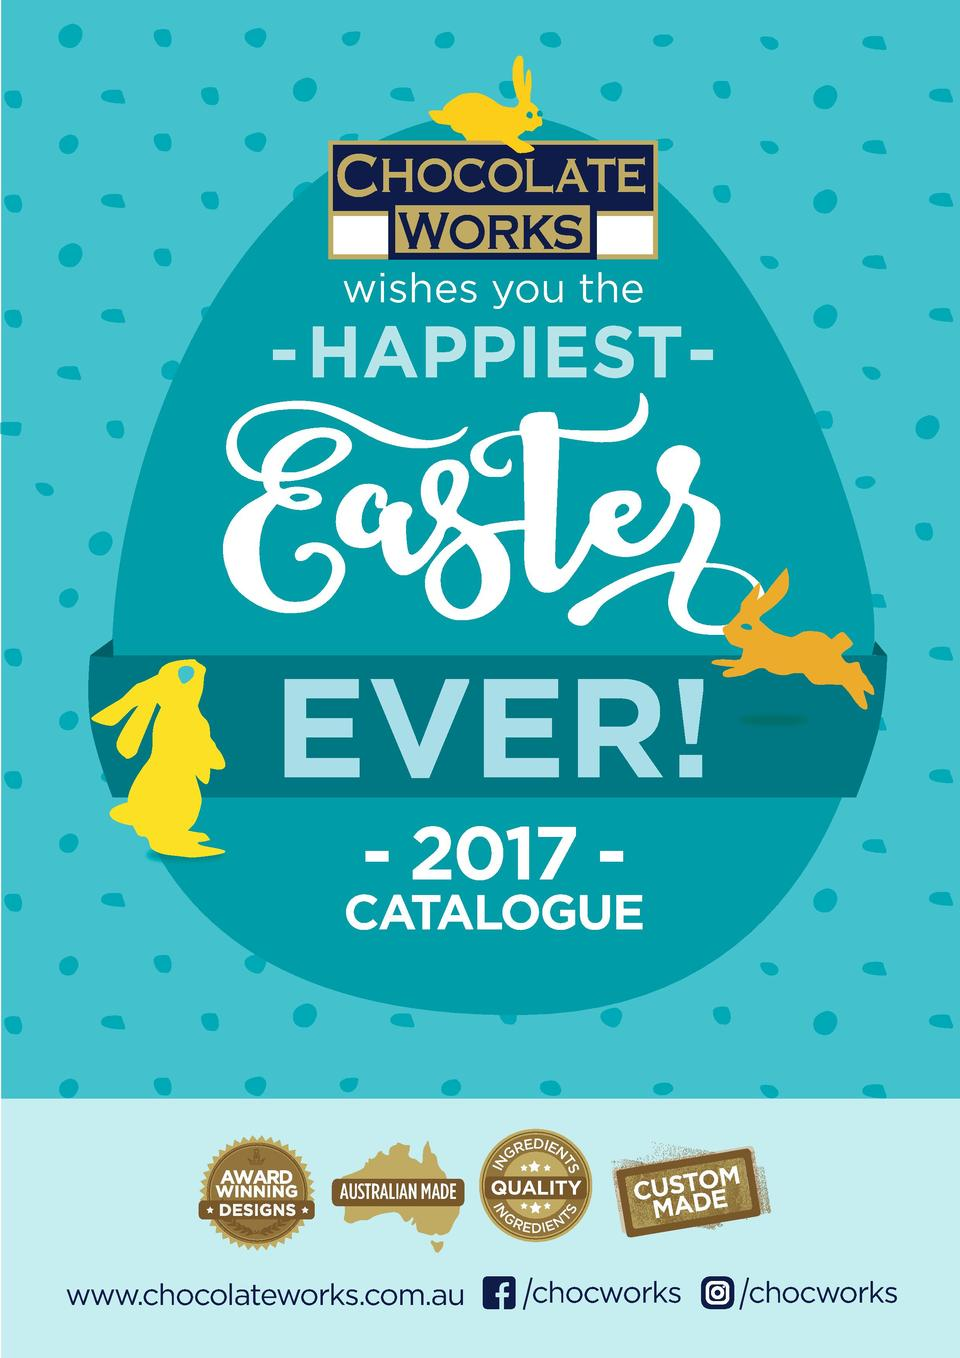 CHOCOLATE WORKS  wishes you the  -HAPPIEST-  EVER  - 2017 -  QUALITY IN  G  www.chocolateworks.com.au  TS  AUSTRALIAN MADE...